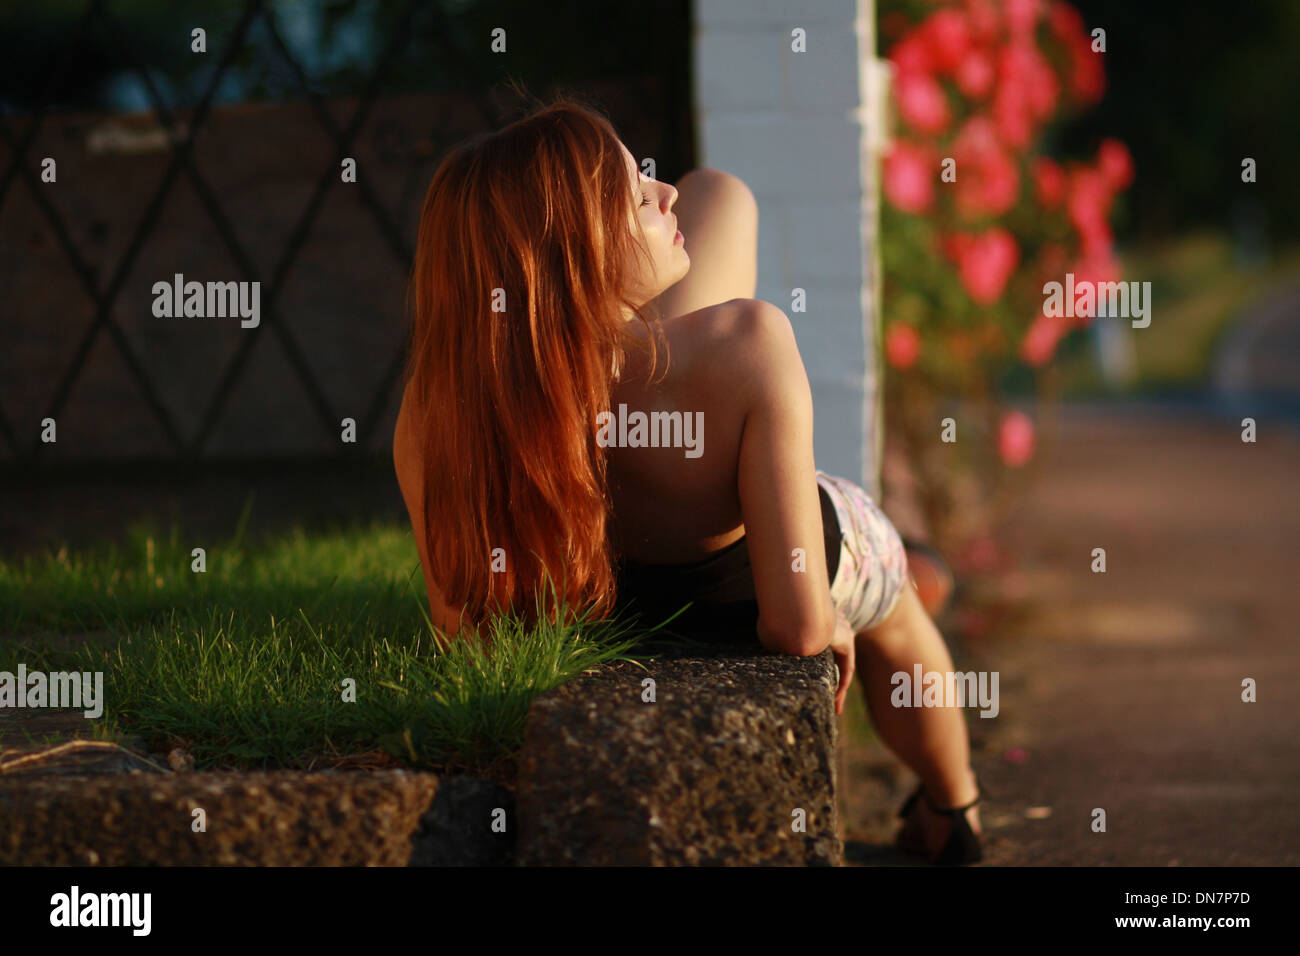 Young woman lying on a brick wall in the sunlight - Stock Image